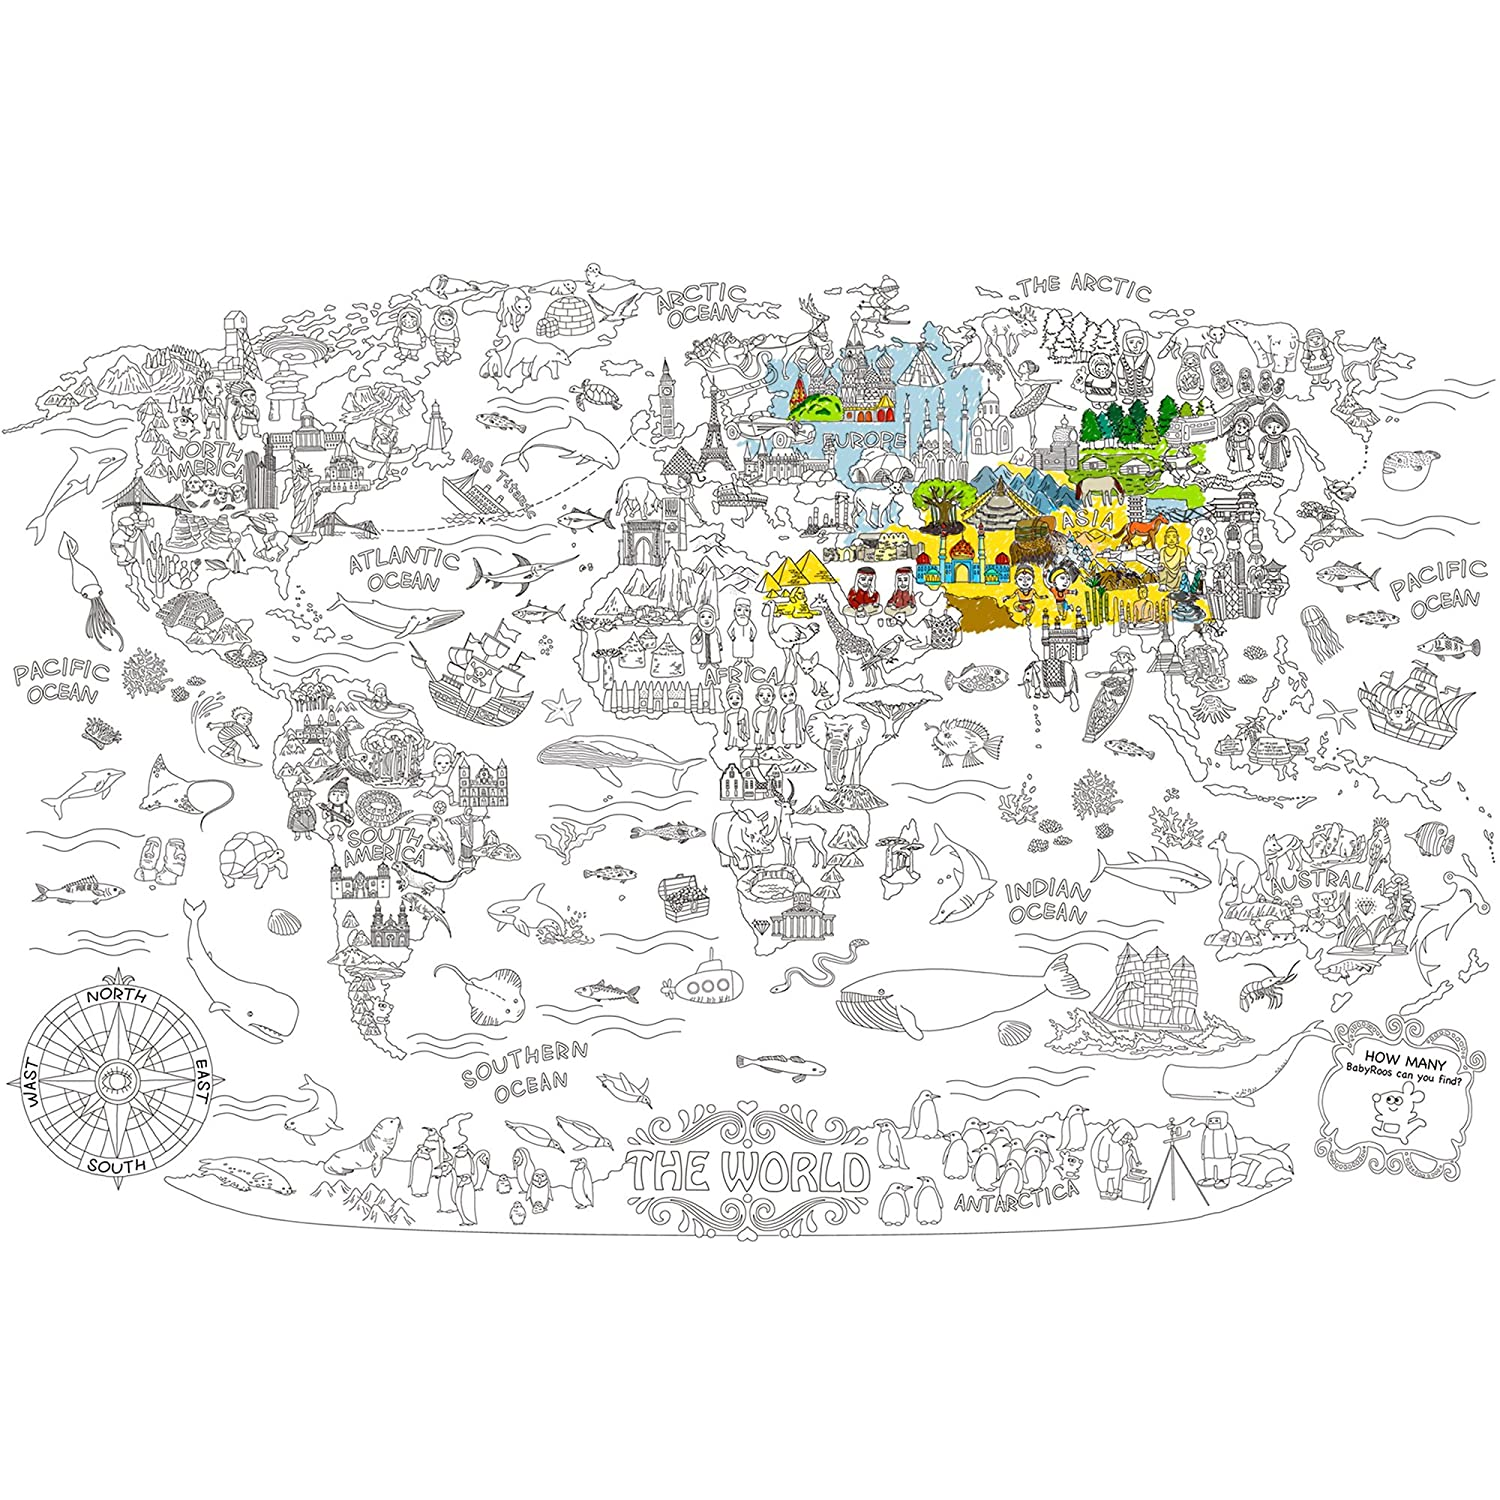 Amazon.com: Jar Melo Super Painter;Giant Coloring Poster; The World ...